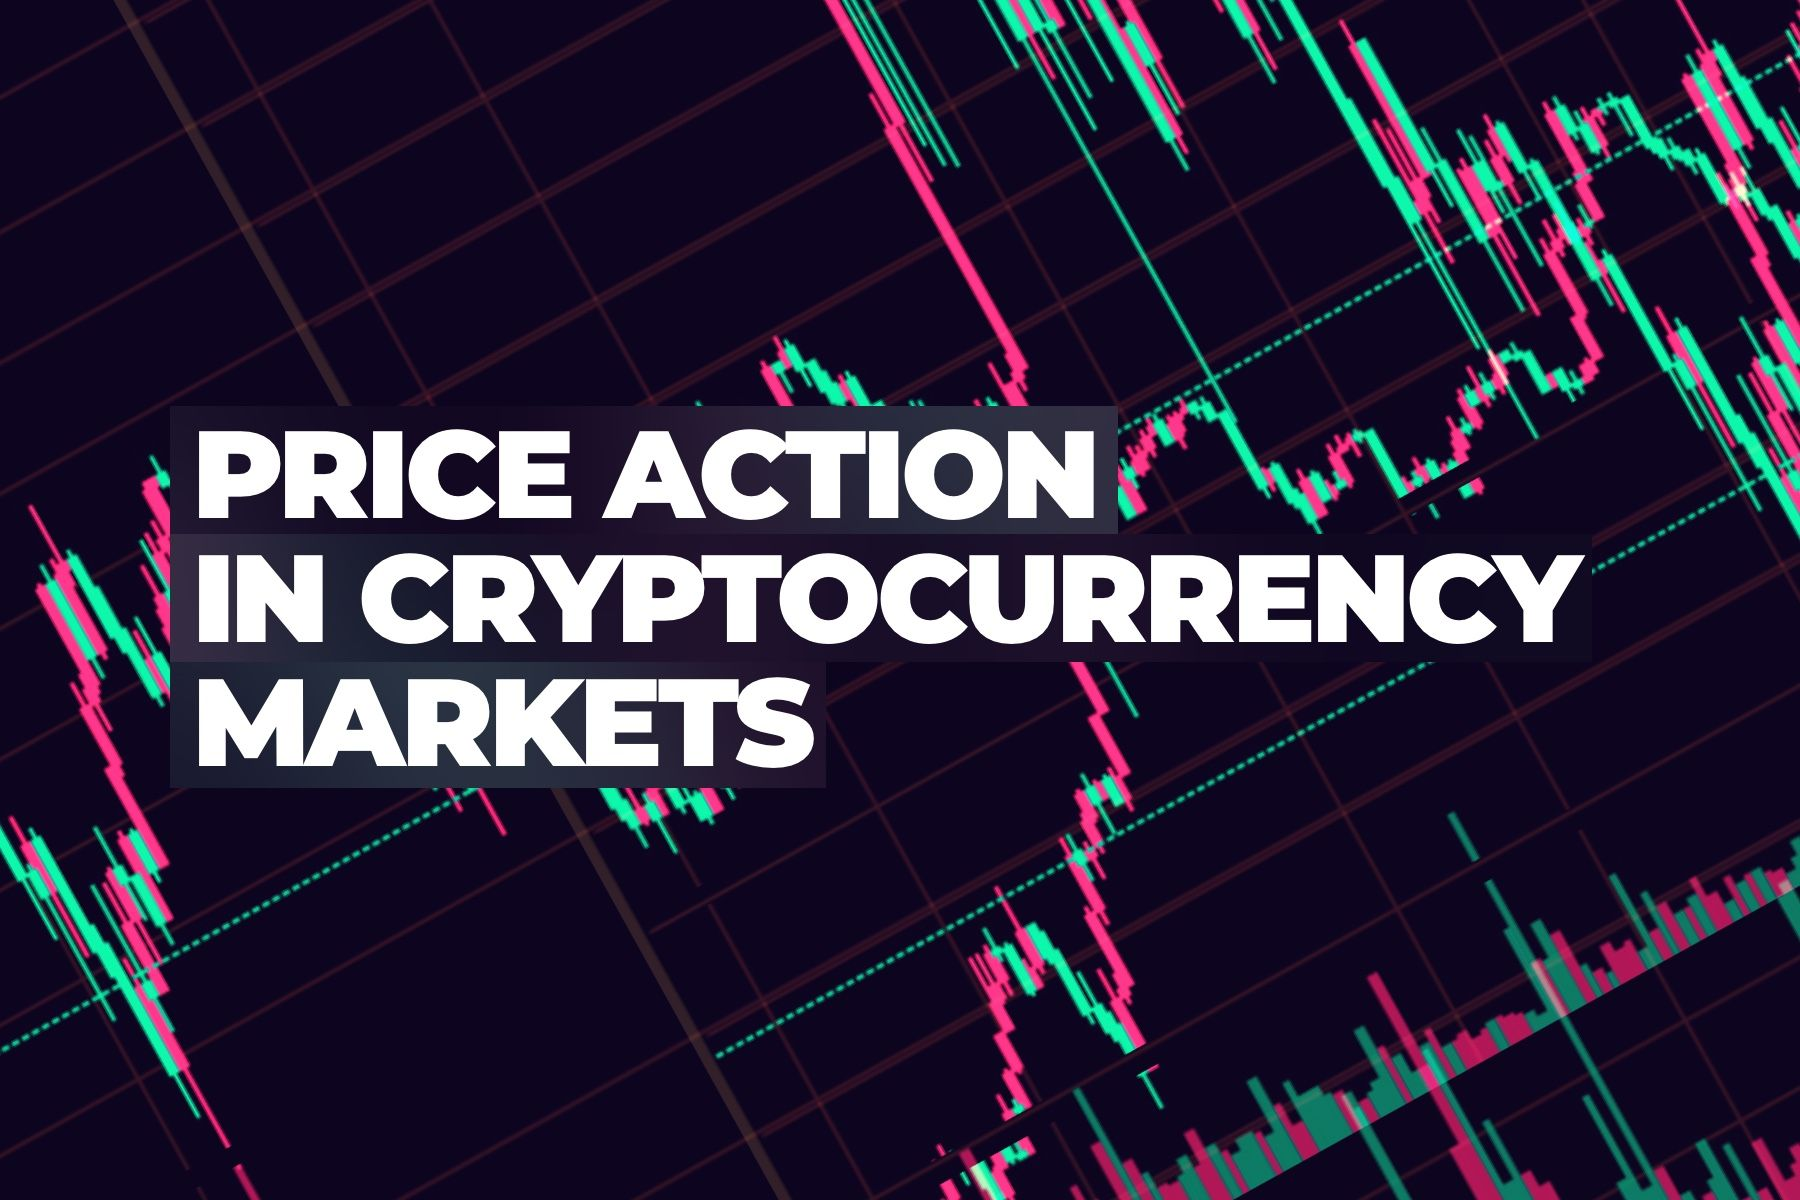 How to read price action in cryptocurrency markets